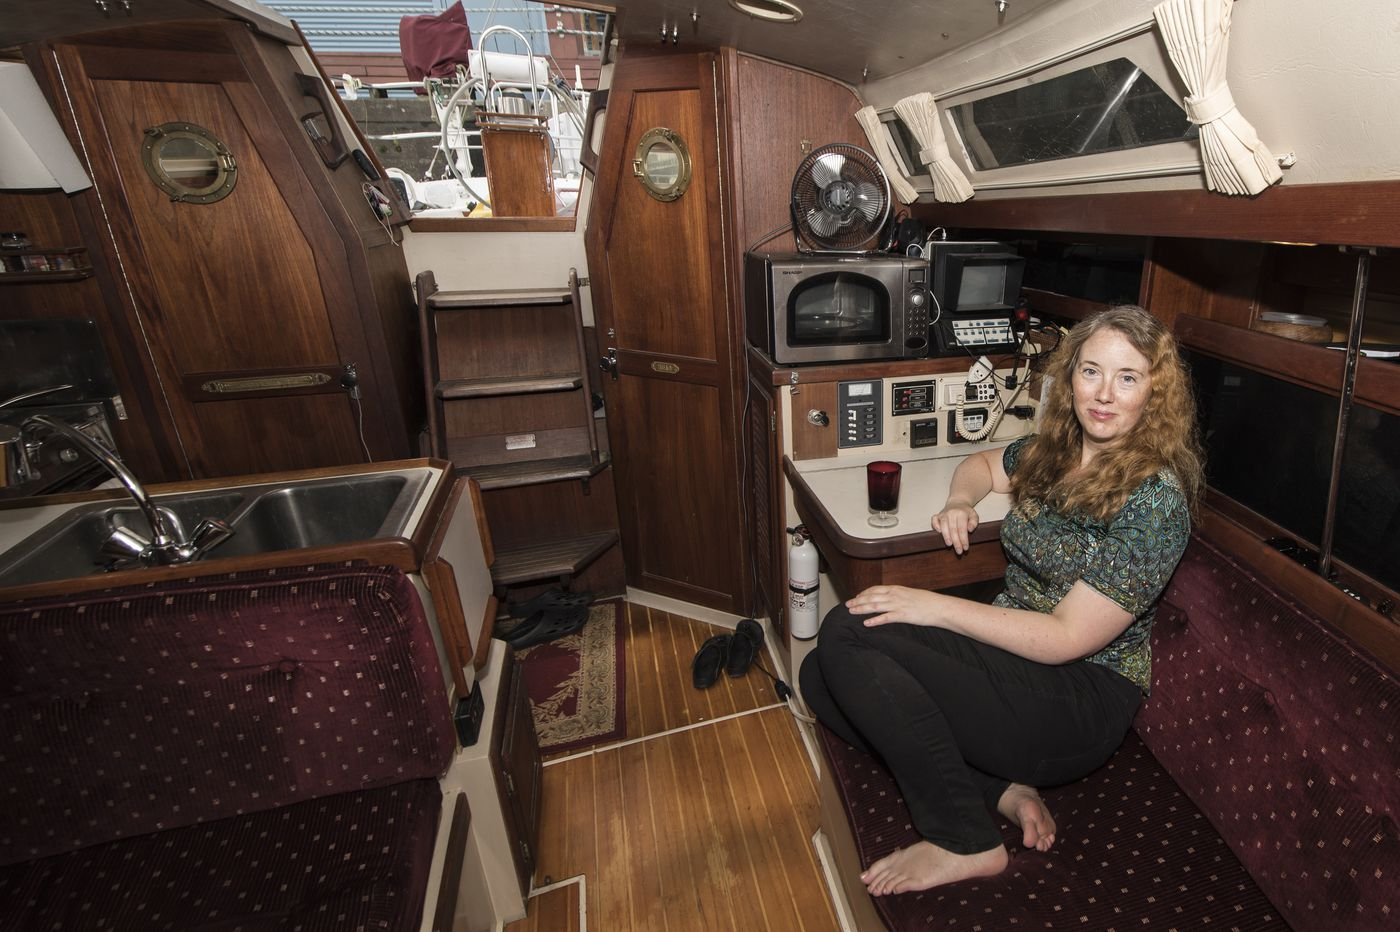 Living on a boat on the Delaware River? 'It's the best deal in Philadelphia.'